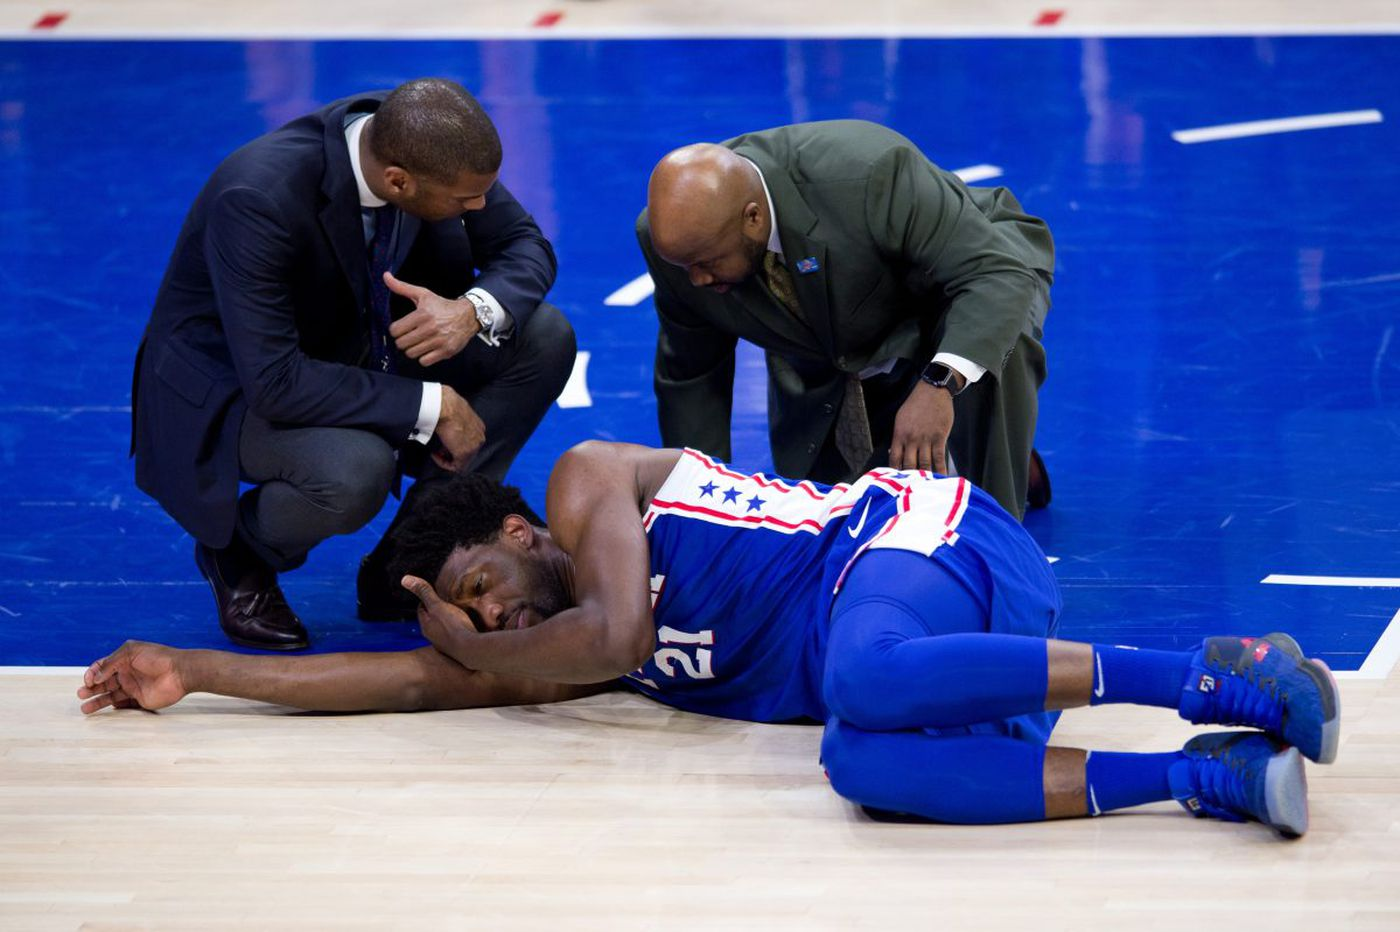 Sixers' Joel Embiid to undergo surgery after eye injury, concussion